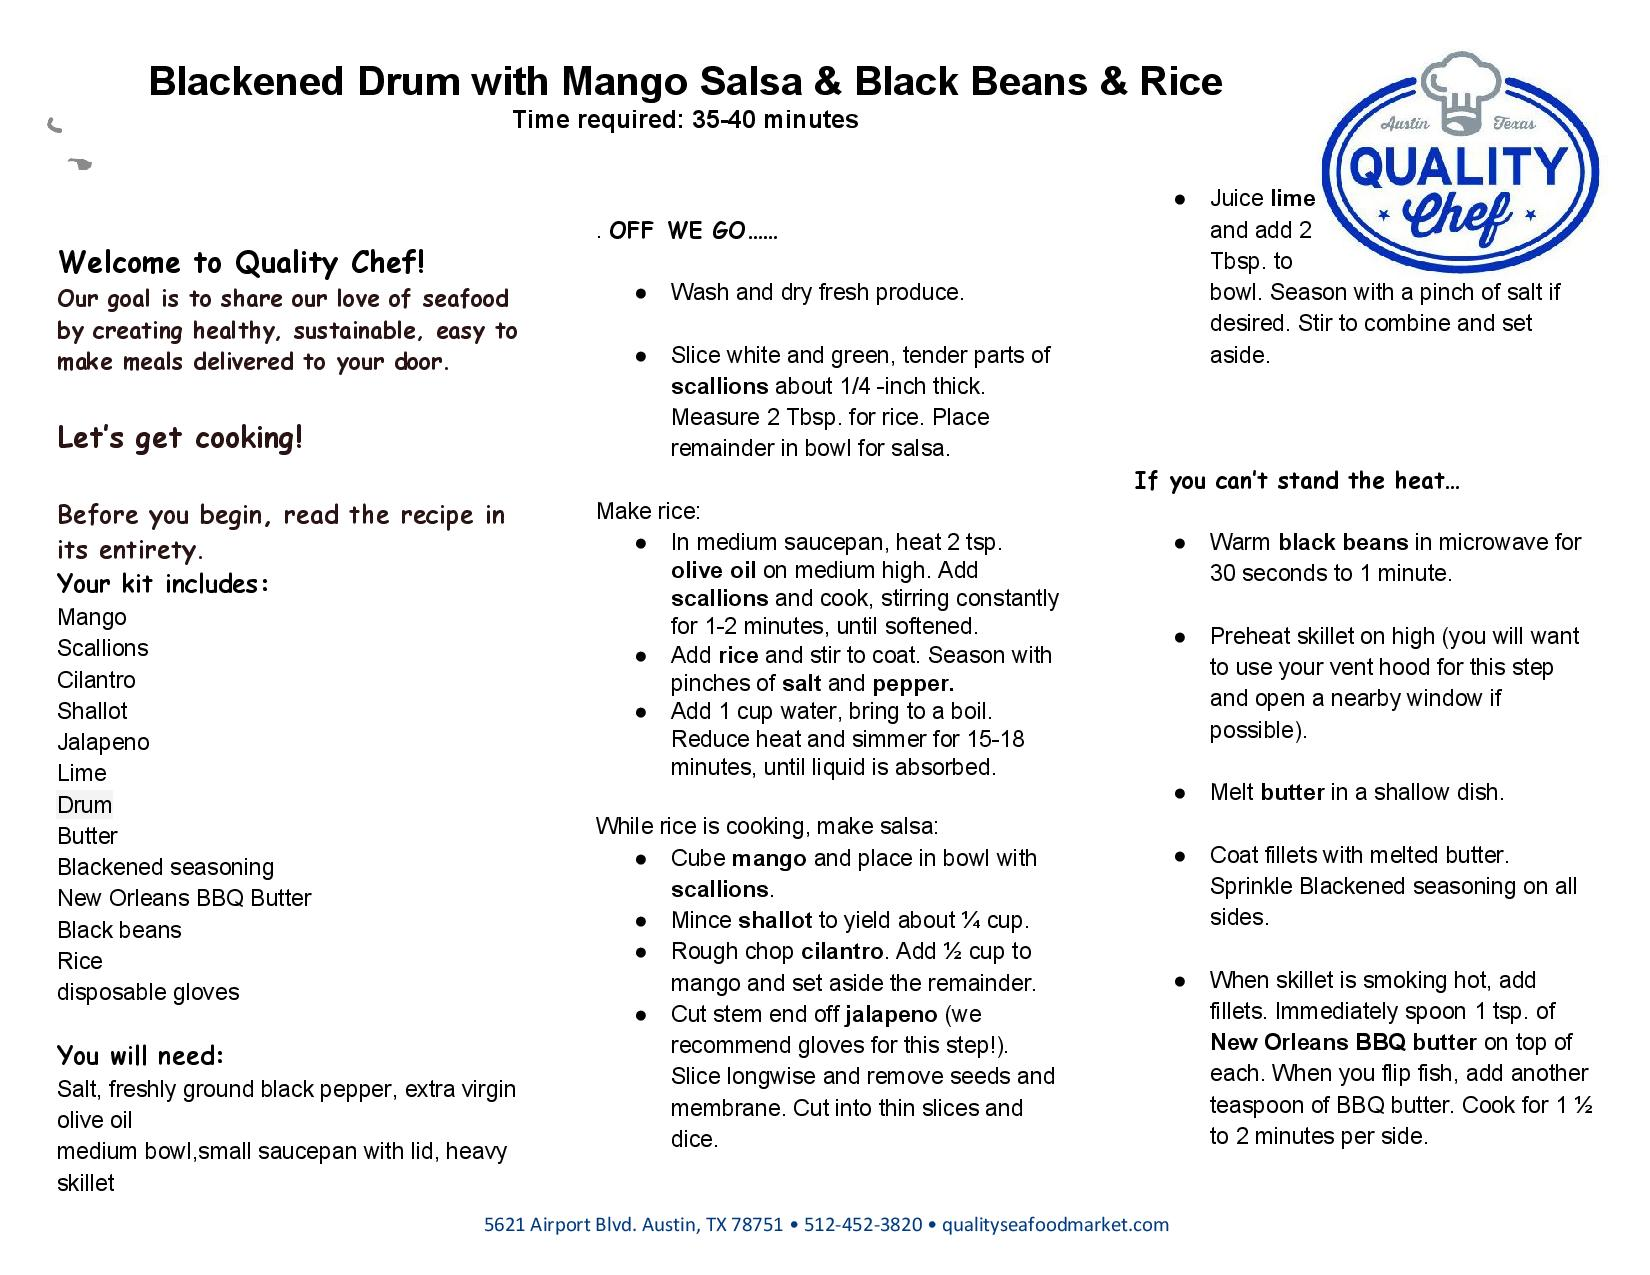 QC Blackened Fish with Mango Salsa and Black Beans  Rice-page-001.jpg